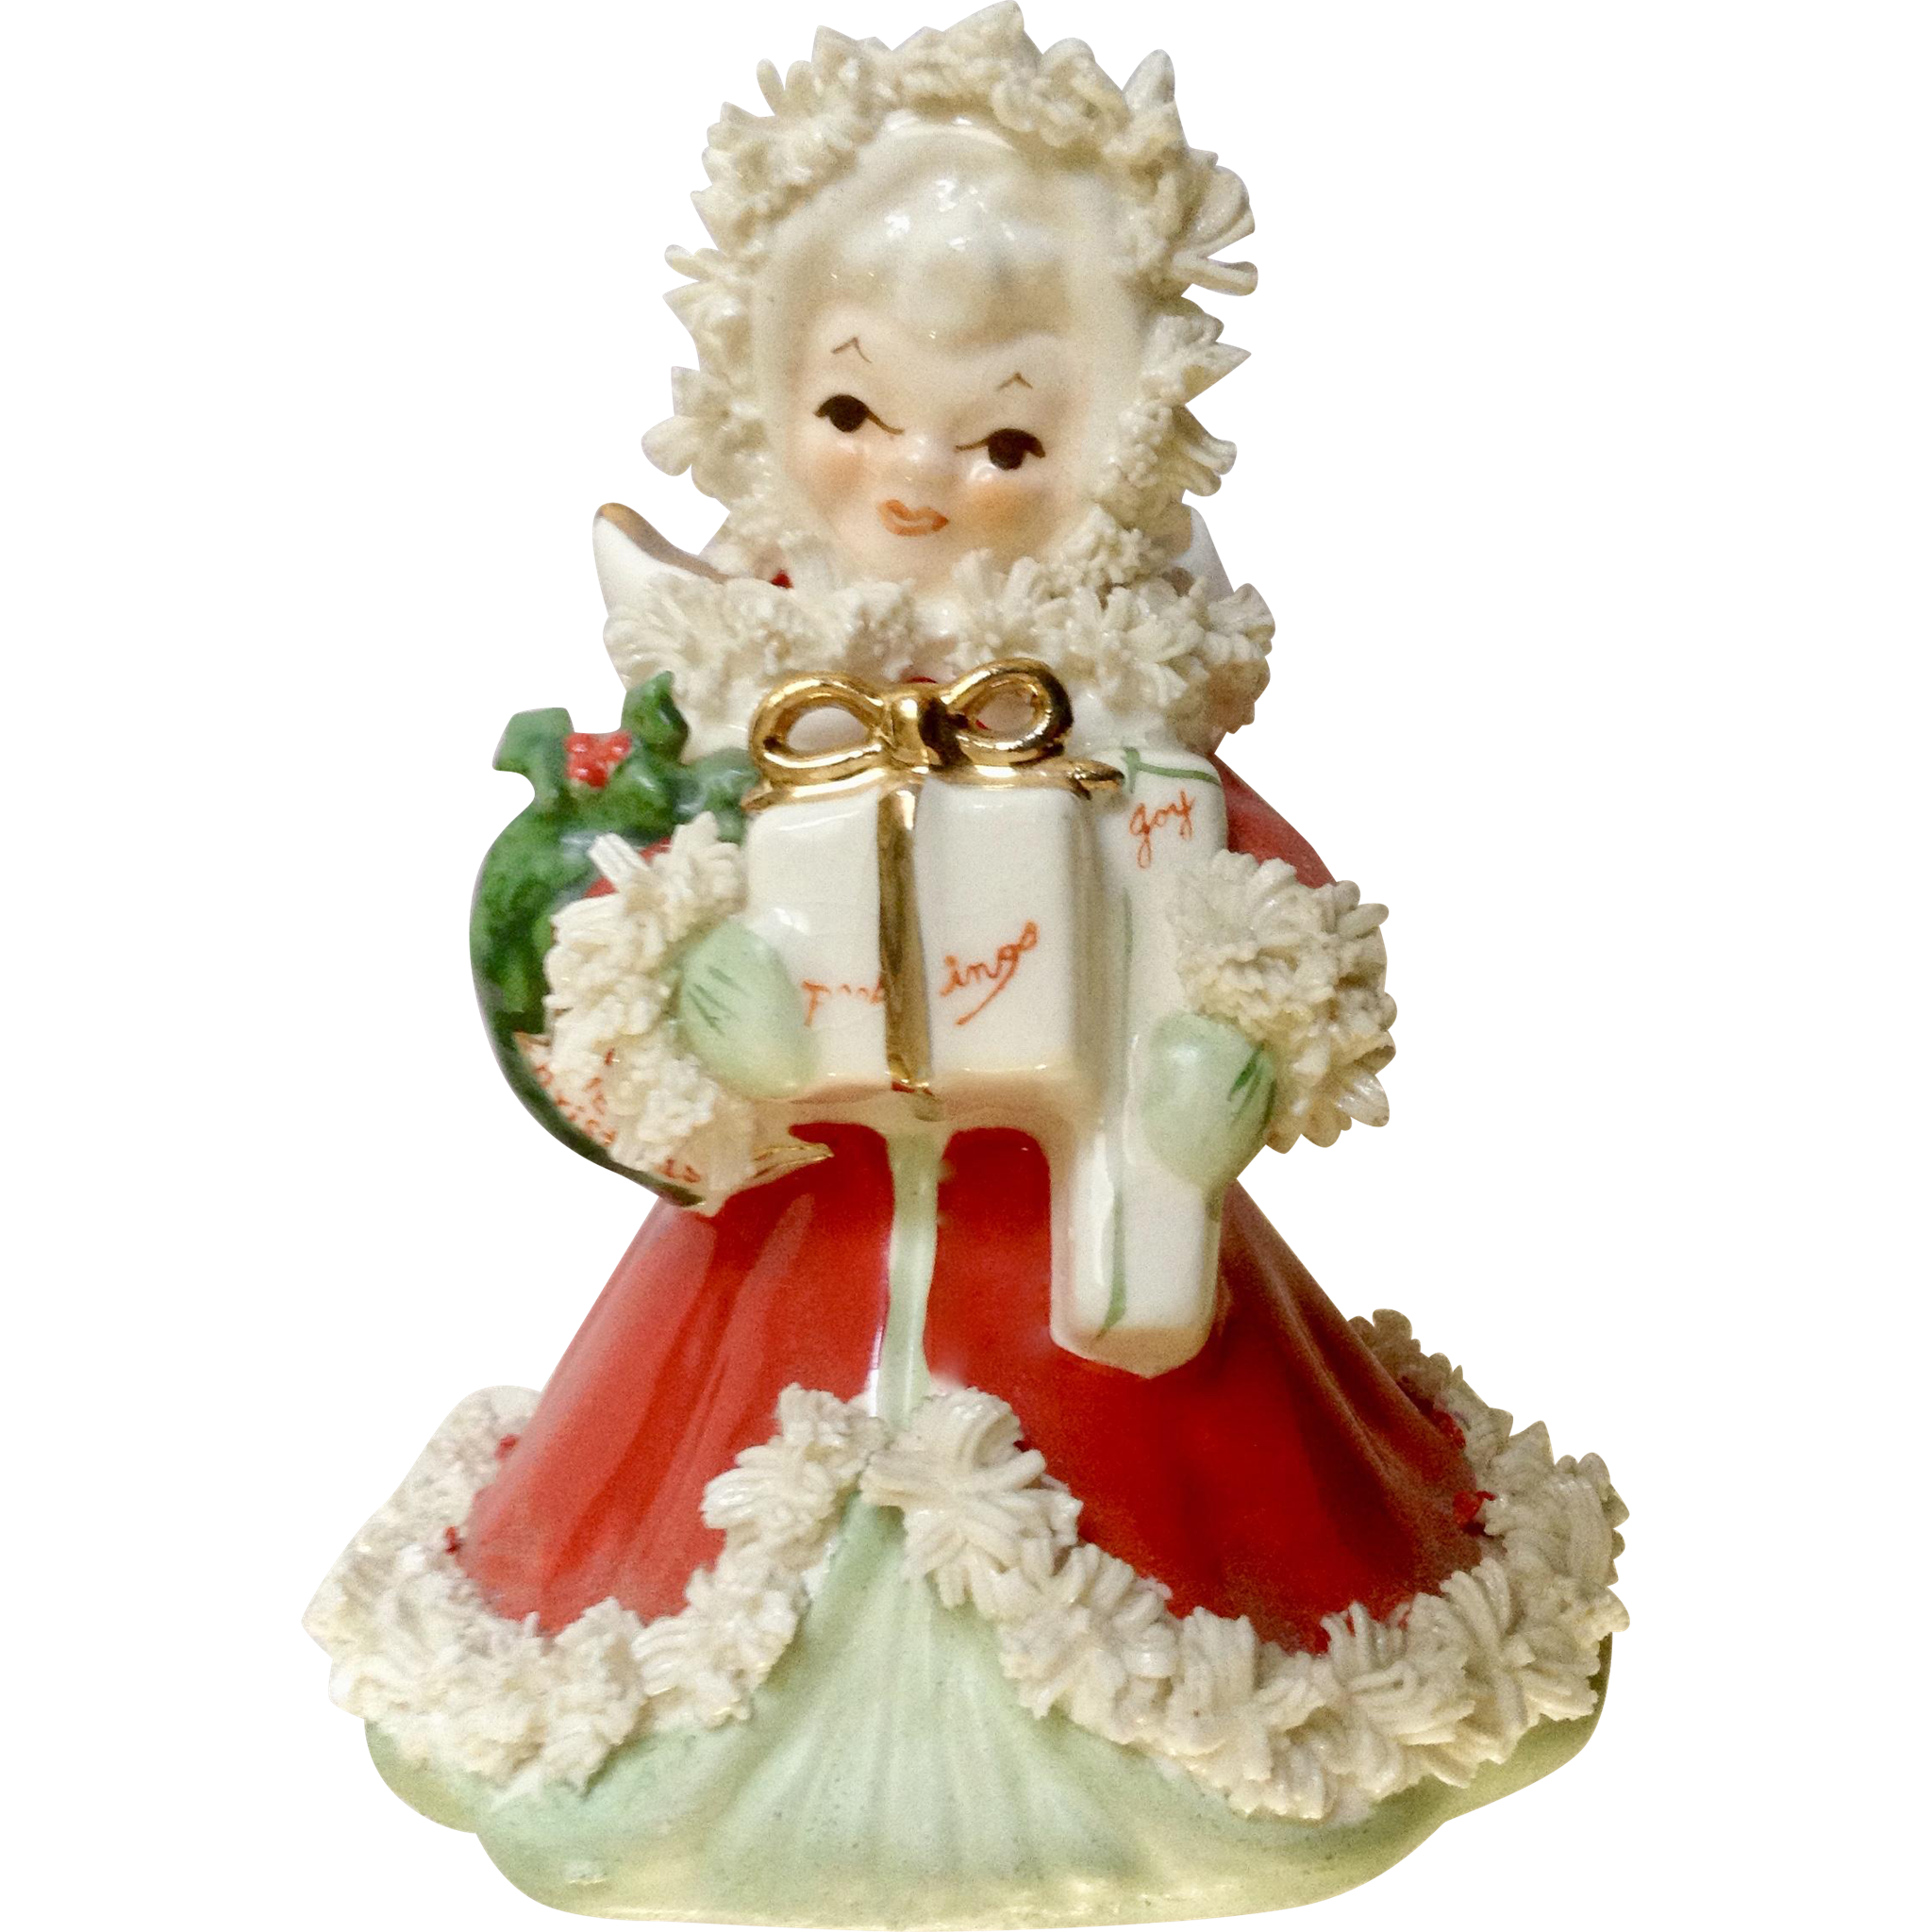 Napco Xmas Angel S116A Christmas Girl in Red with Spaghetti Trim Bearing Gifts of Season Greetings and Joy 1958